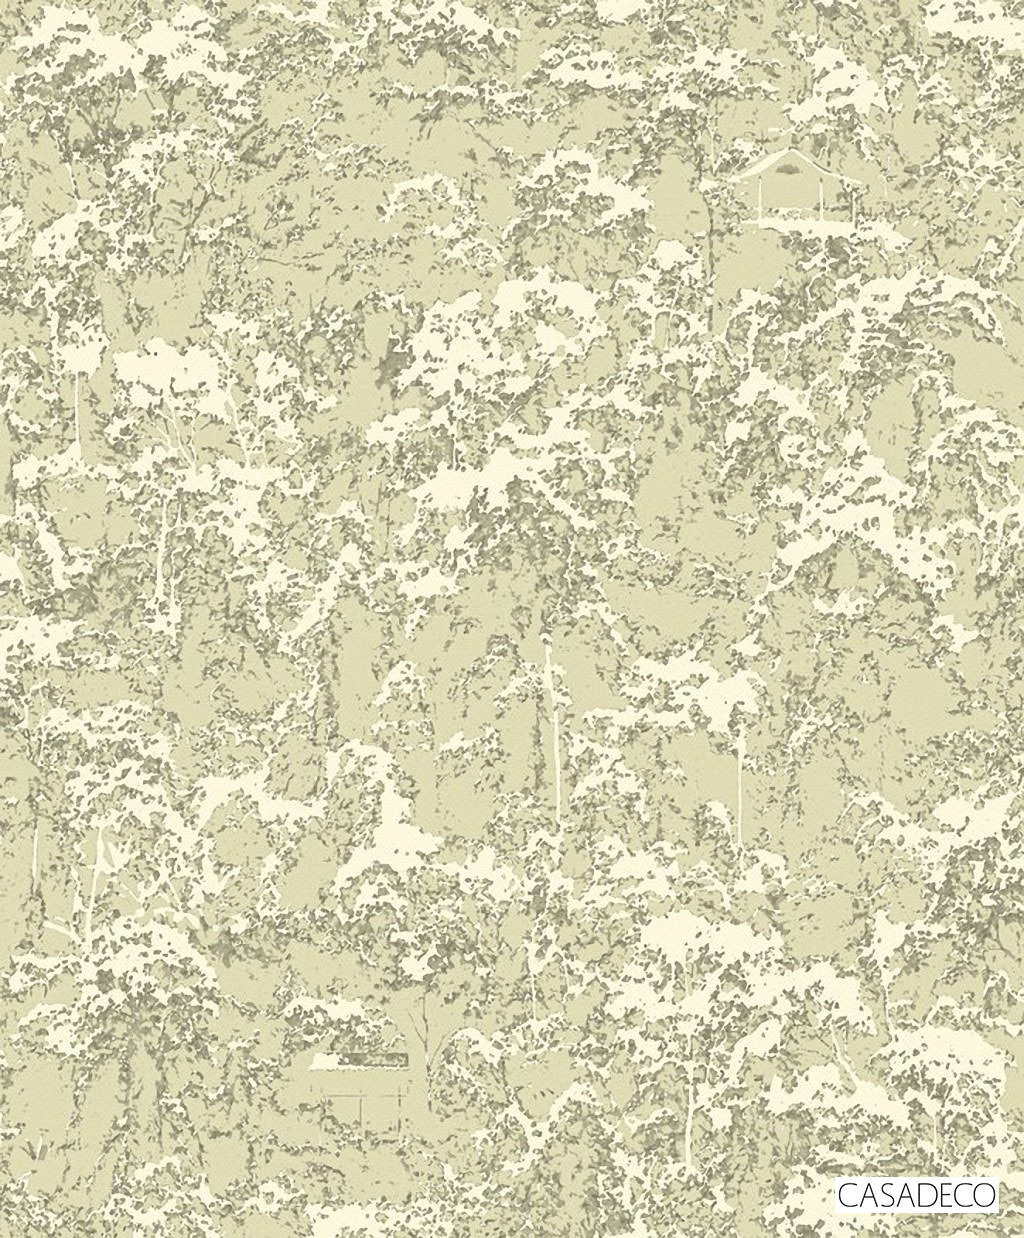 Casadeco Terebro Wallpaper 8264 - 8264 71 36  | Wallpaper, Wallcovering - Green, Decorative, Pattern, Standard Width